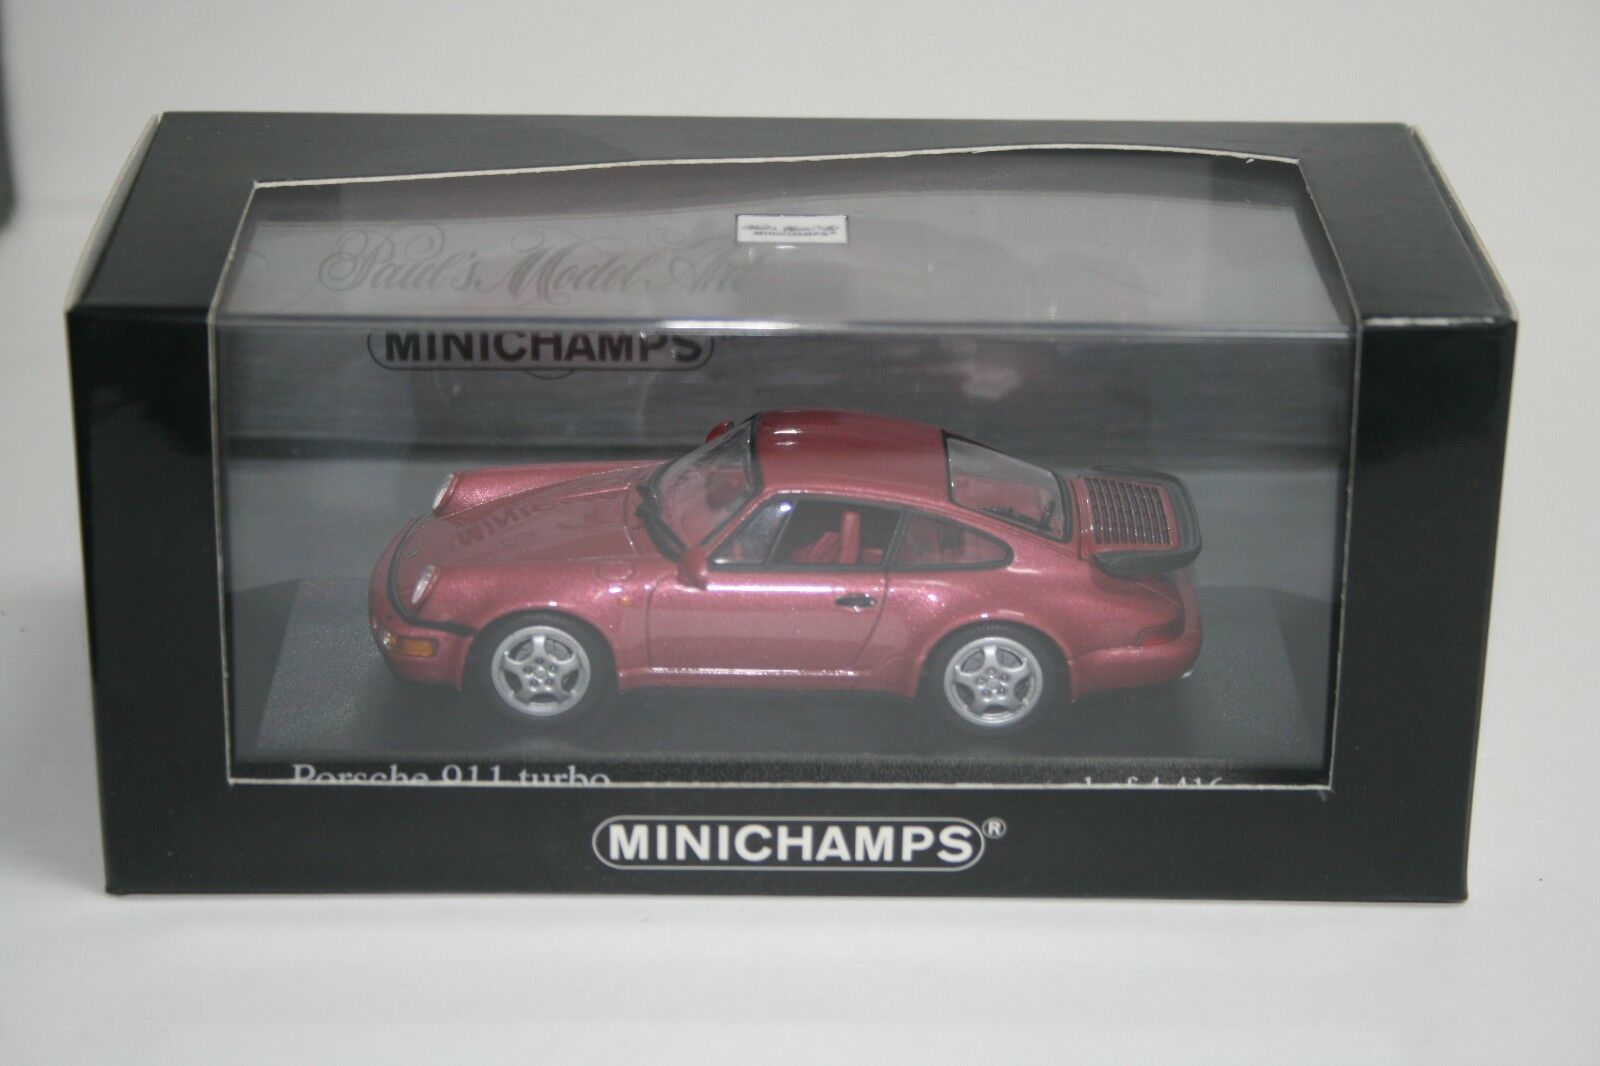 PORSCHE 911 (964) Turbo in Red Metallic, 1 of 4416 worldwide. SOLD OUT